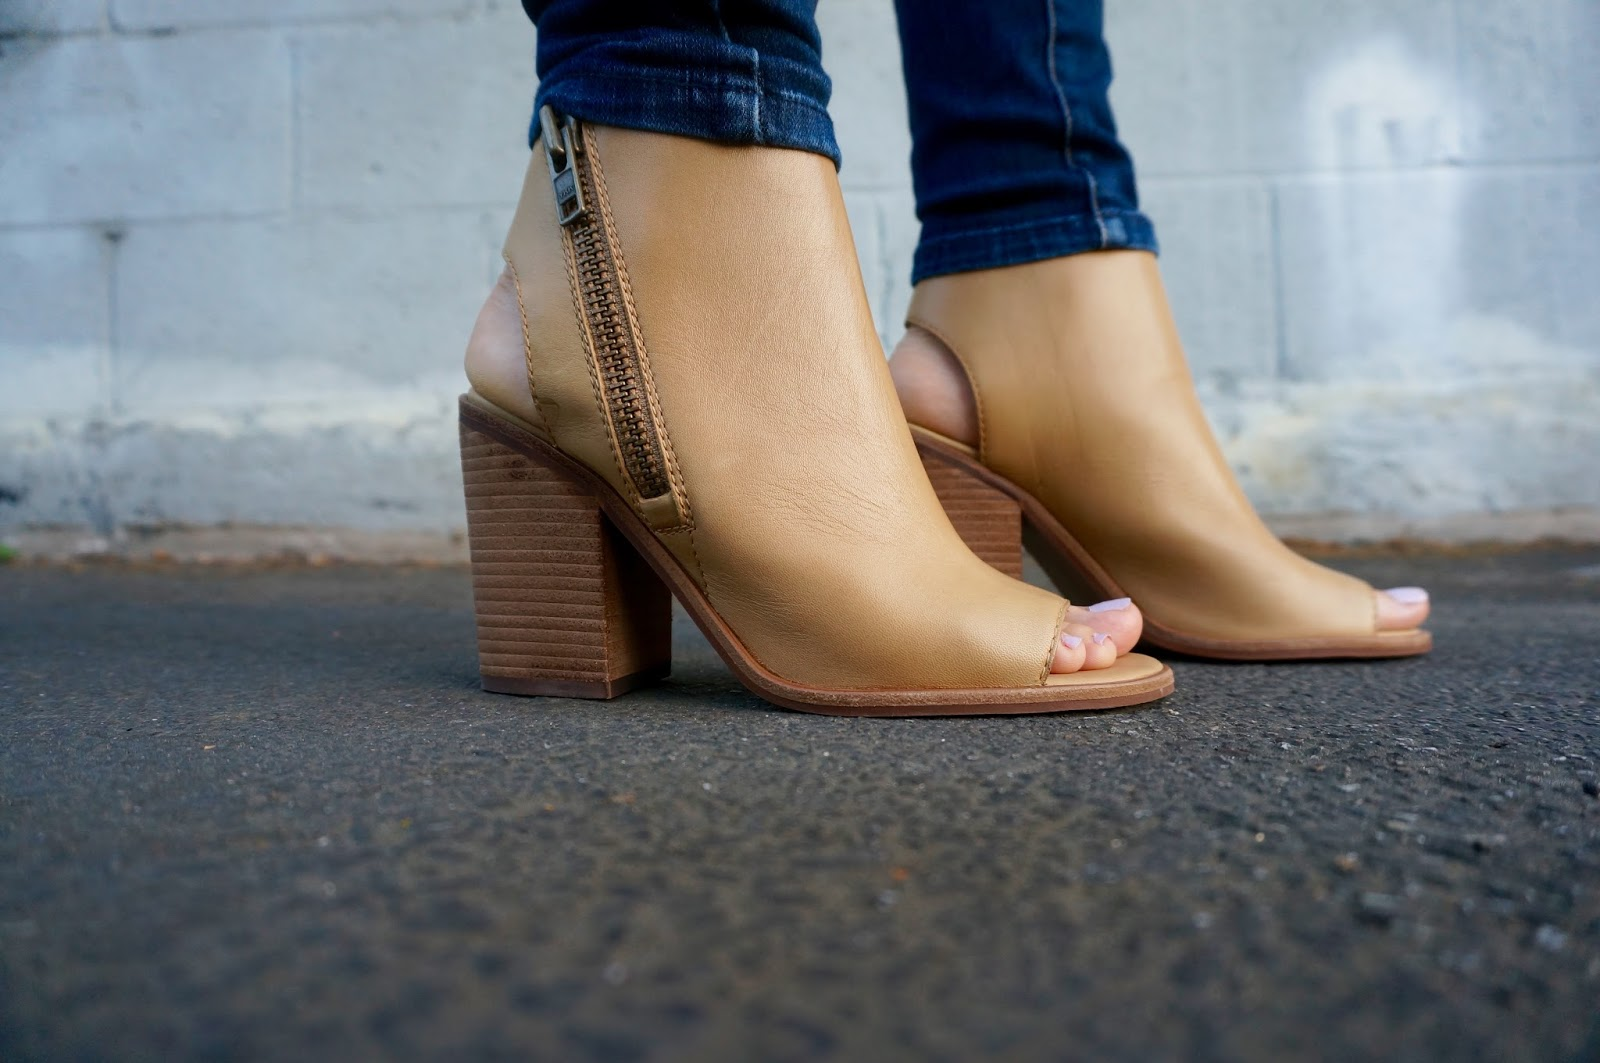 Fall Transition Peep Toe Booties and Peplum Cami - www.greysuede.com